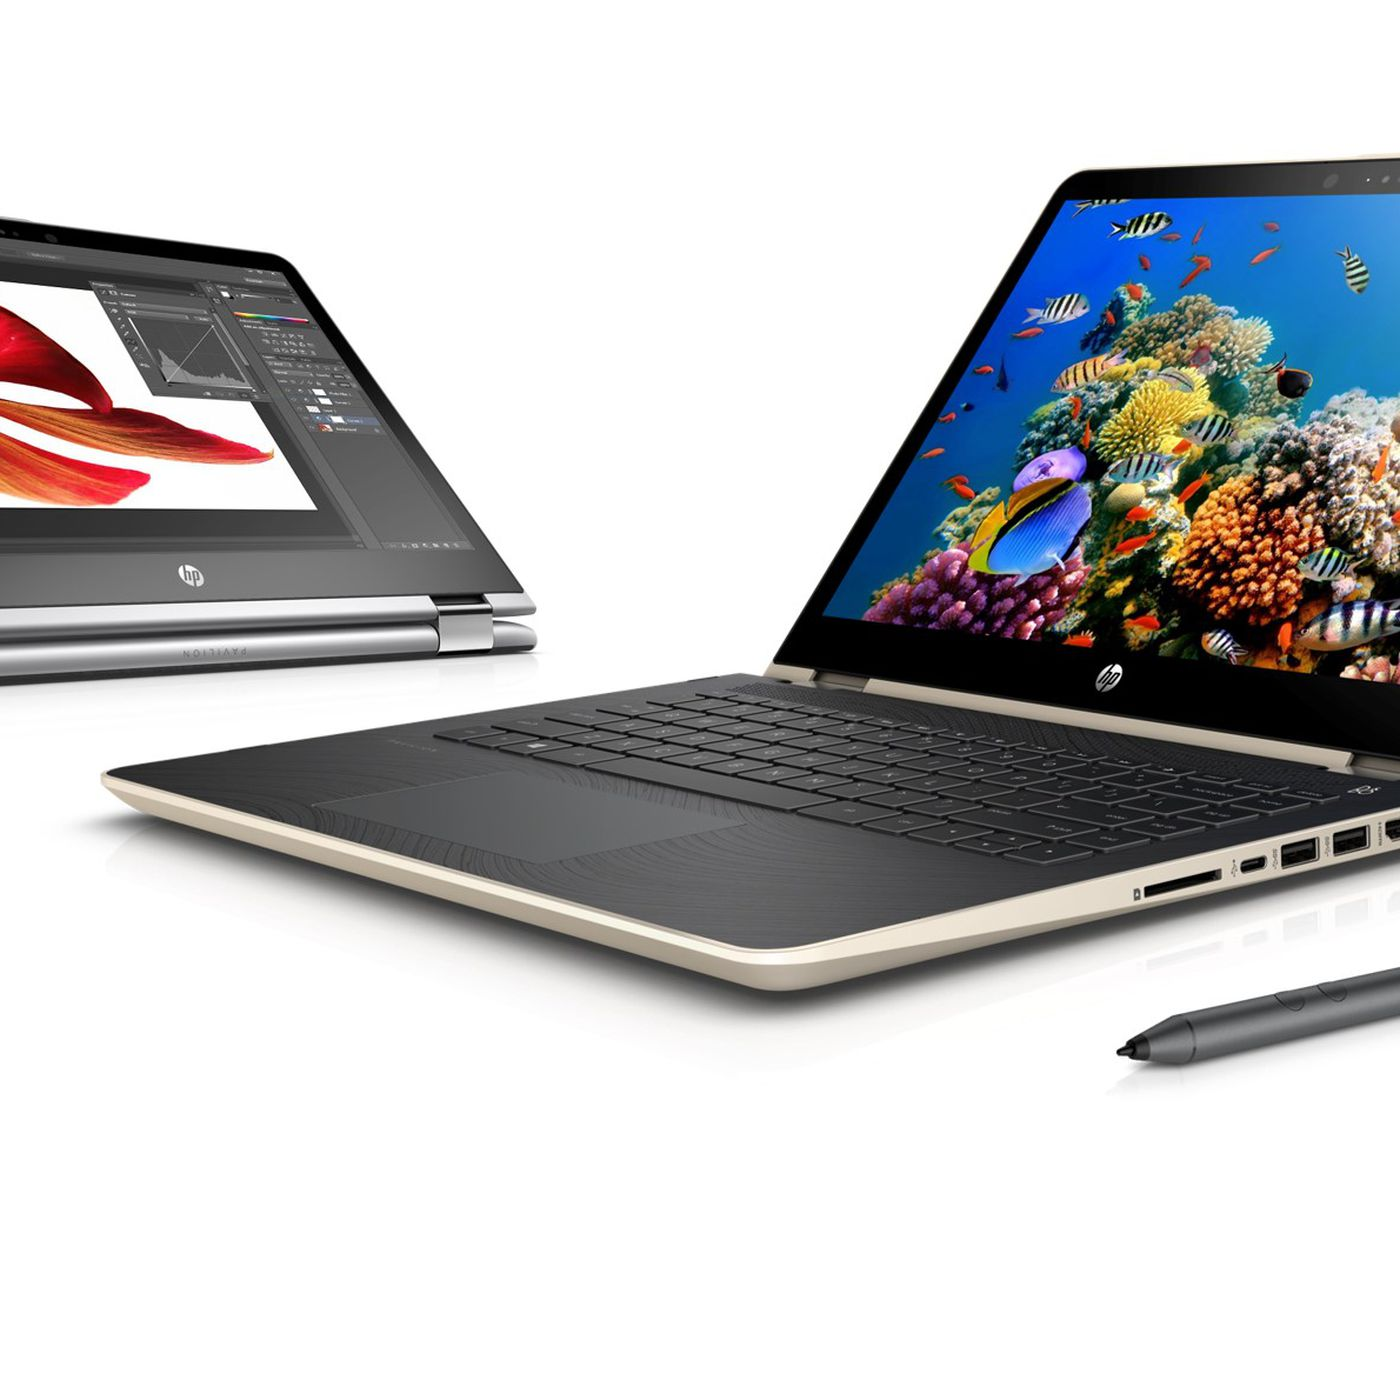 HP's refreshed Pavilion x360 line adds pen support and new